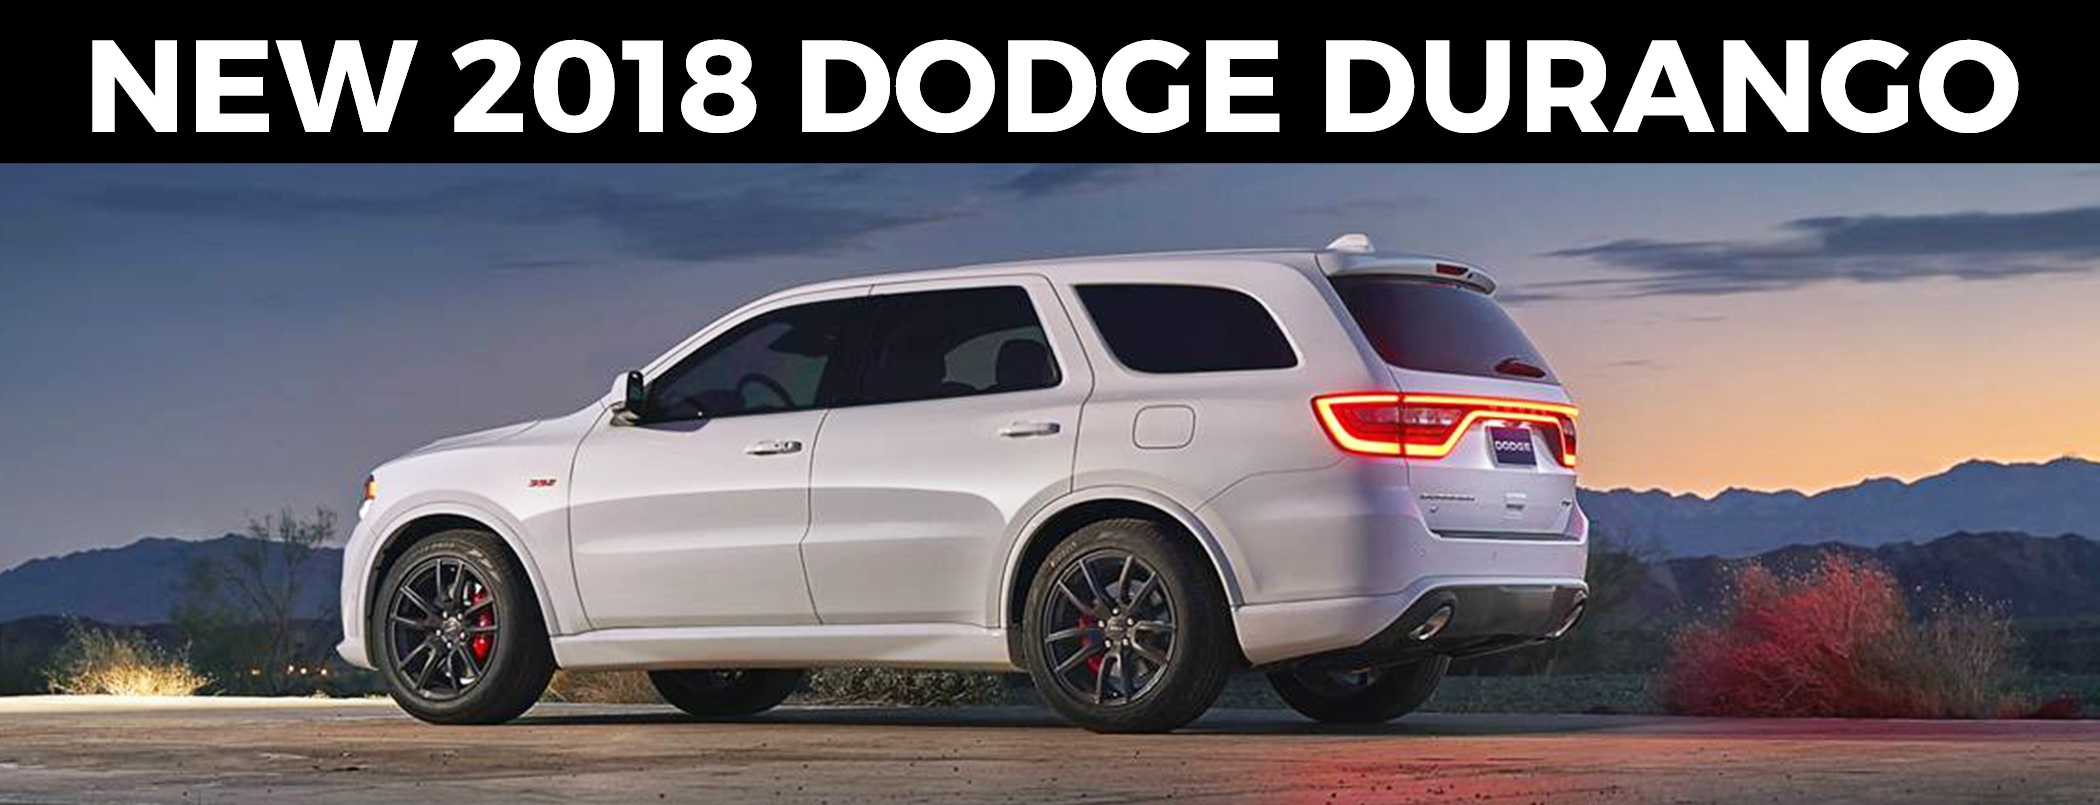 2018 Dodge Durango Review Sandy